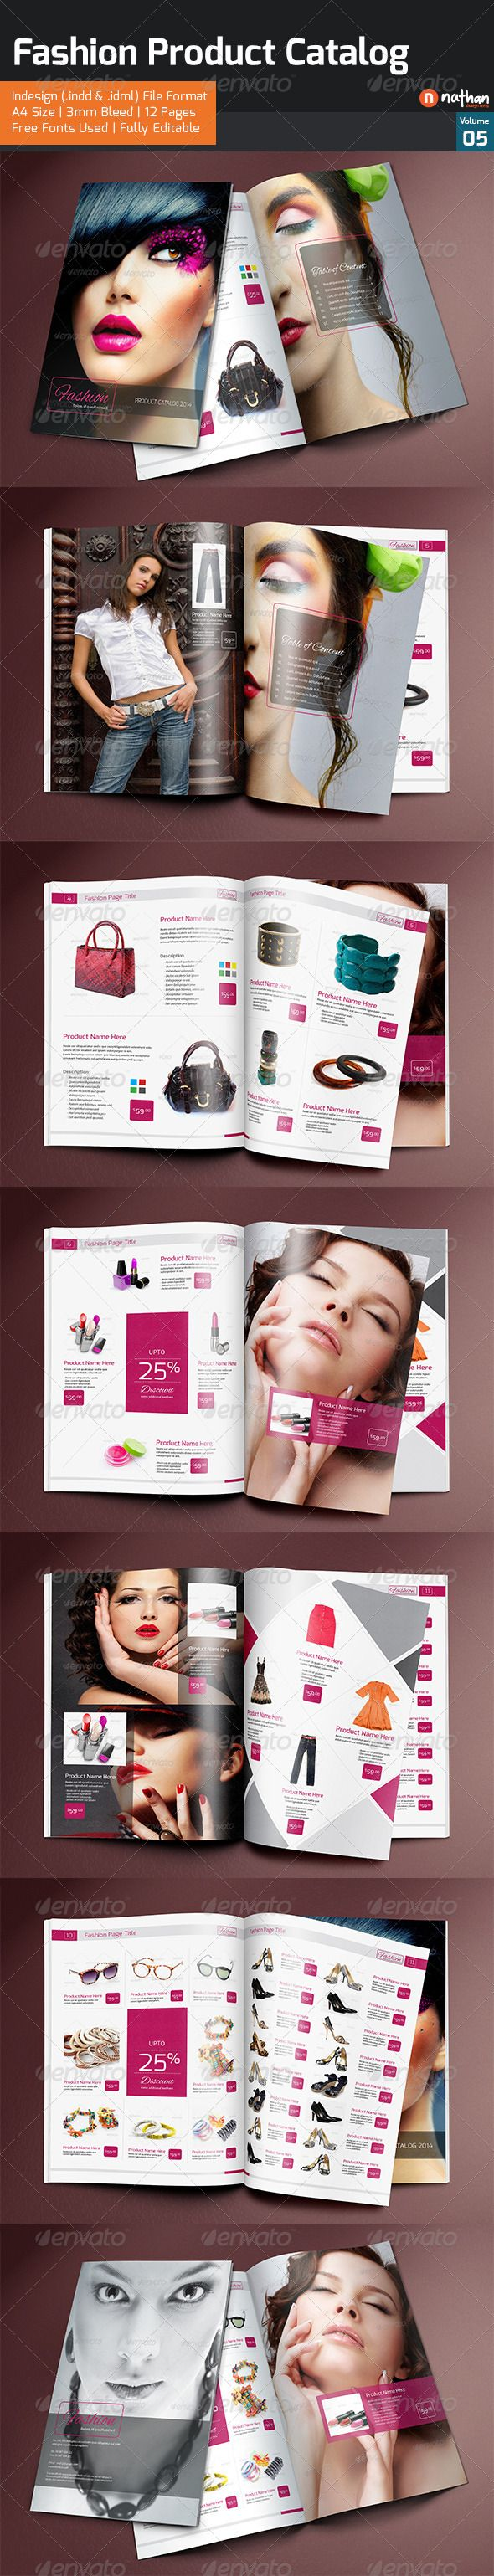 Fashion Product Catalog V5